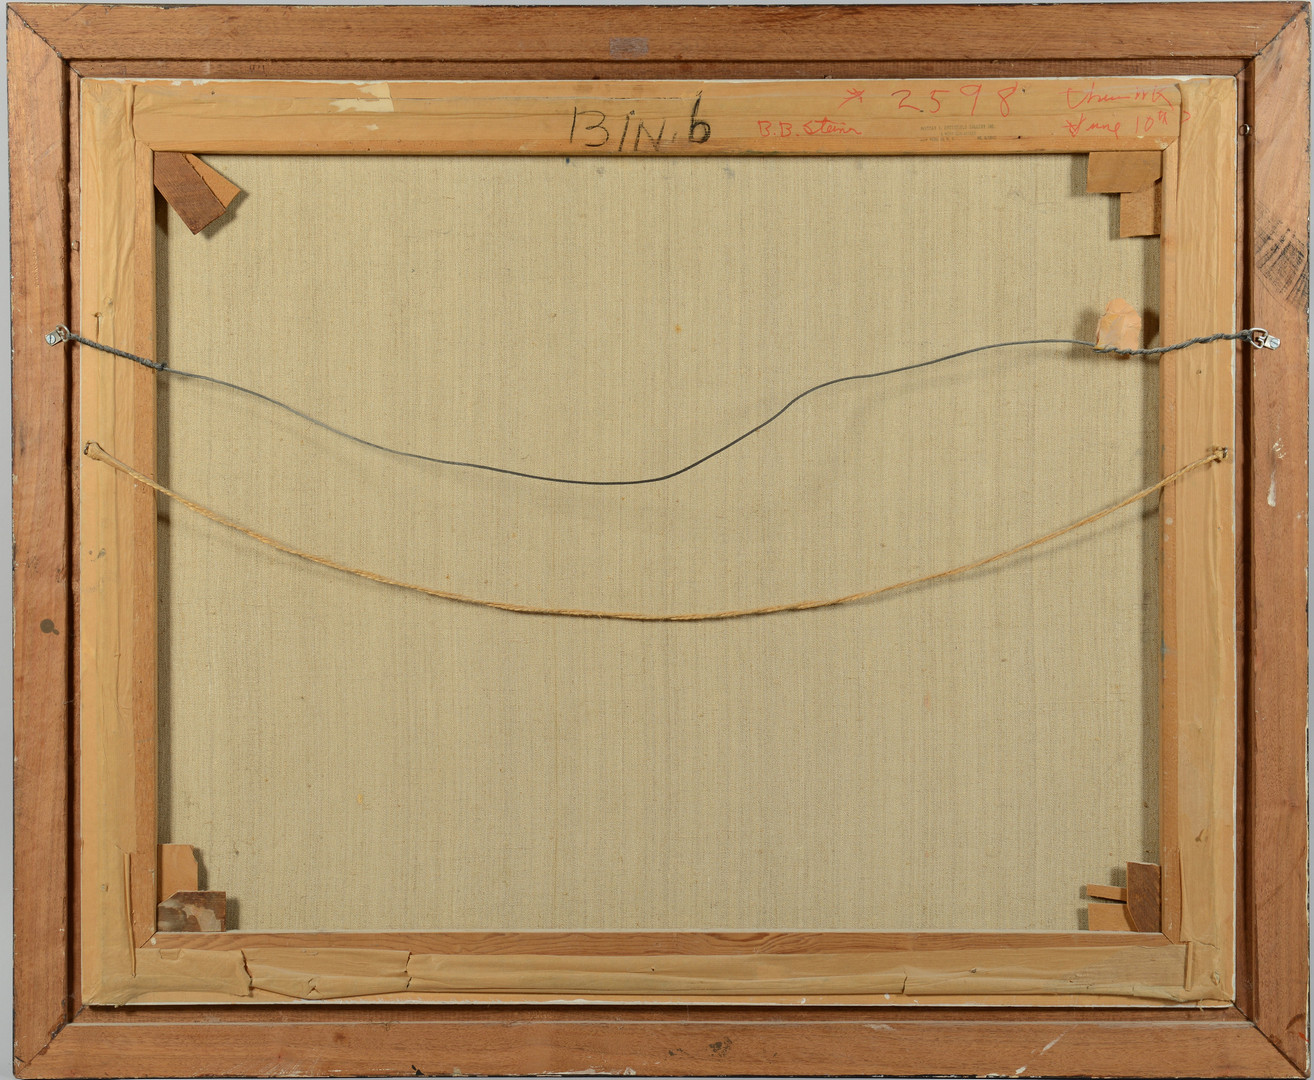 Lot 502: A. Binder oil on canvas